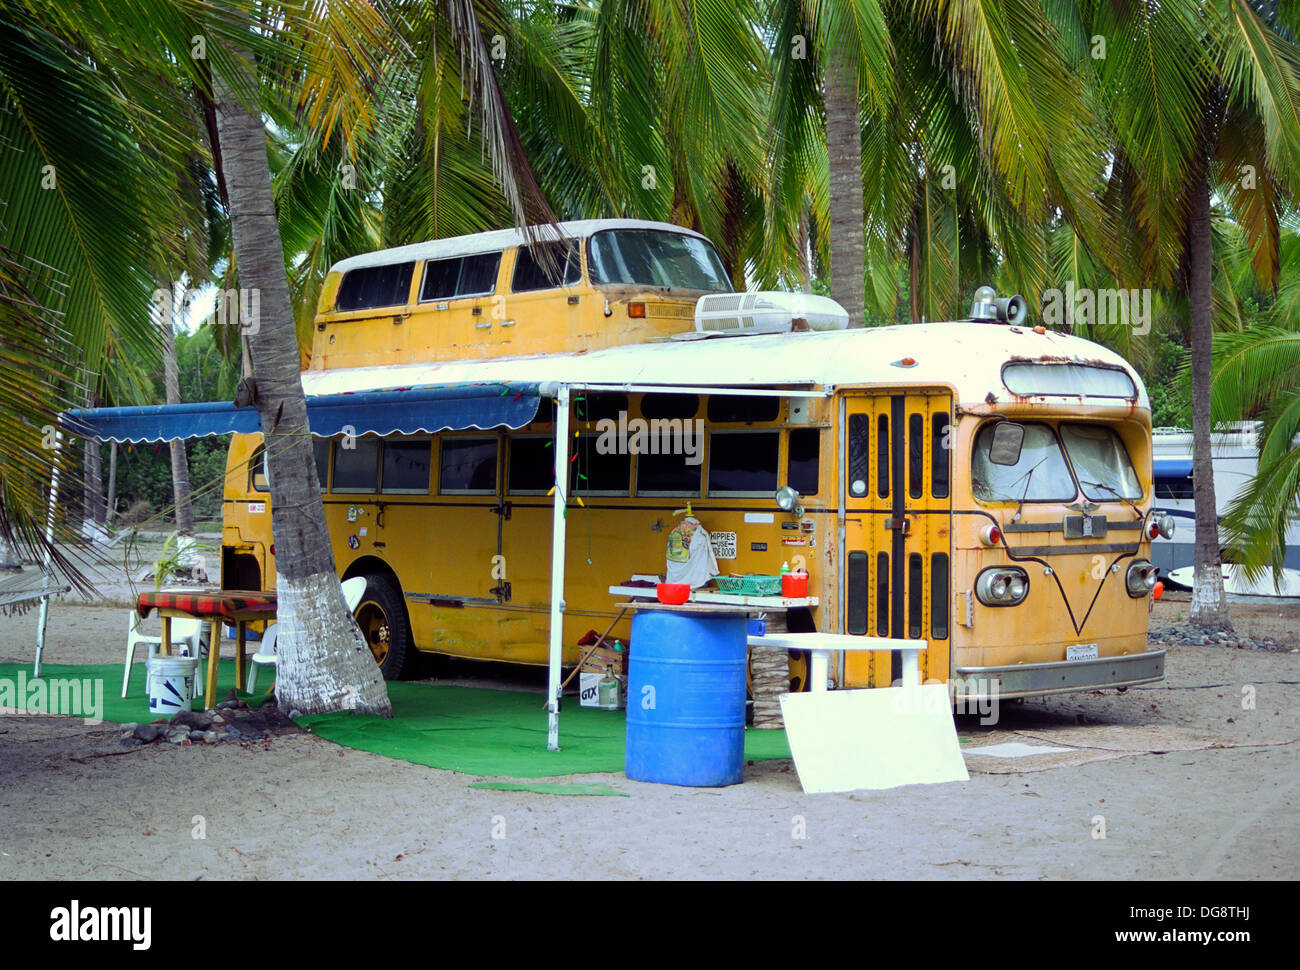 Old Yellow School Bus Converted Into A Double Decker